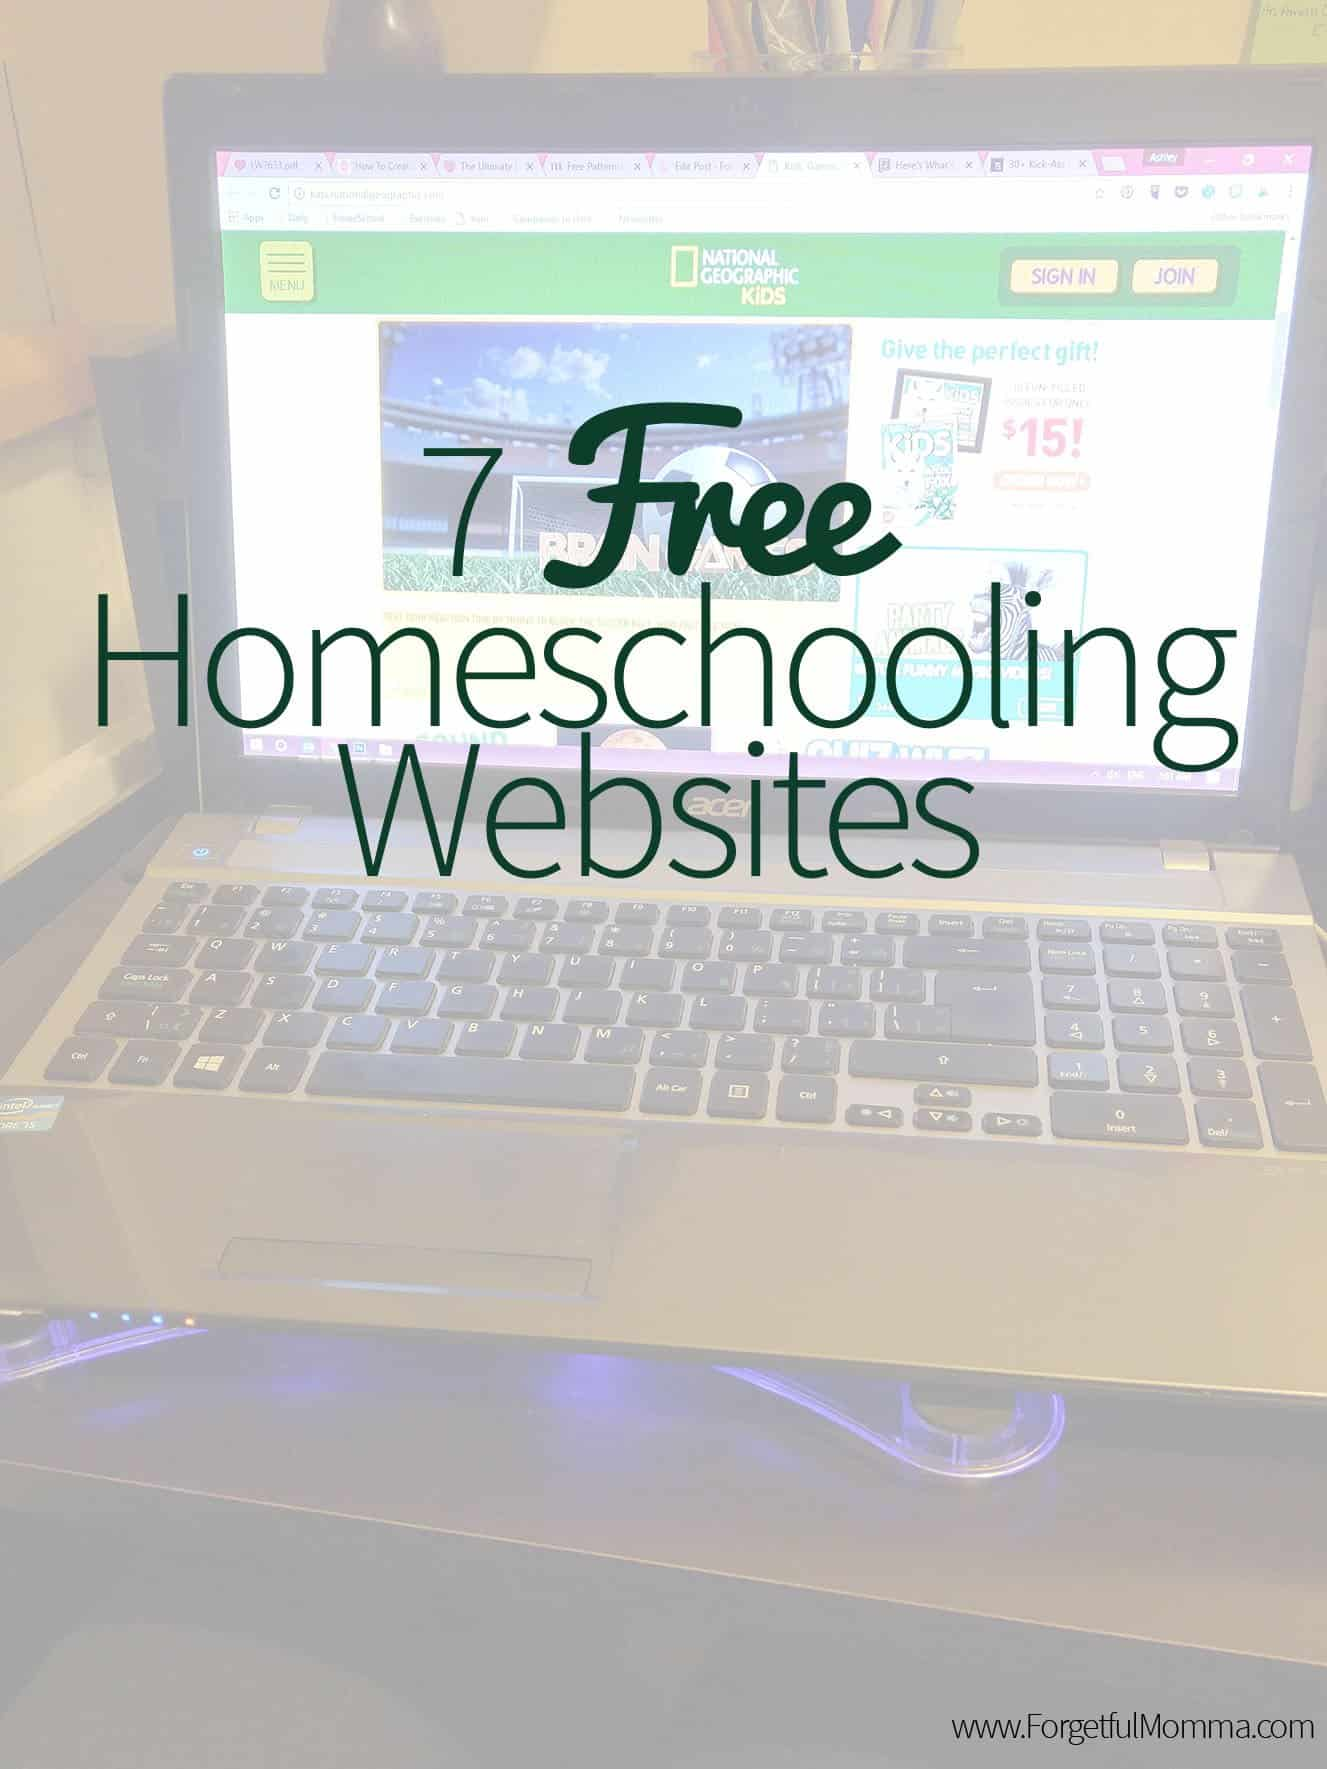 7 Free Homeschooling Websites